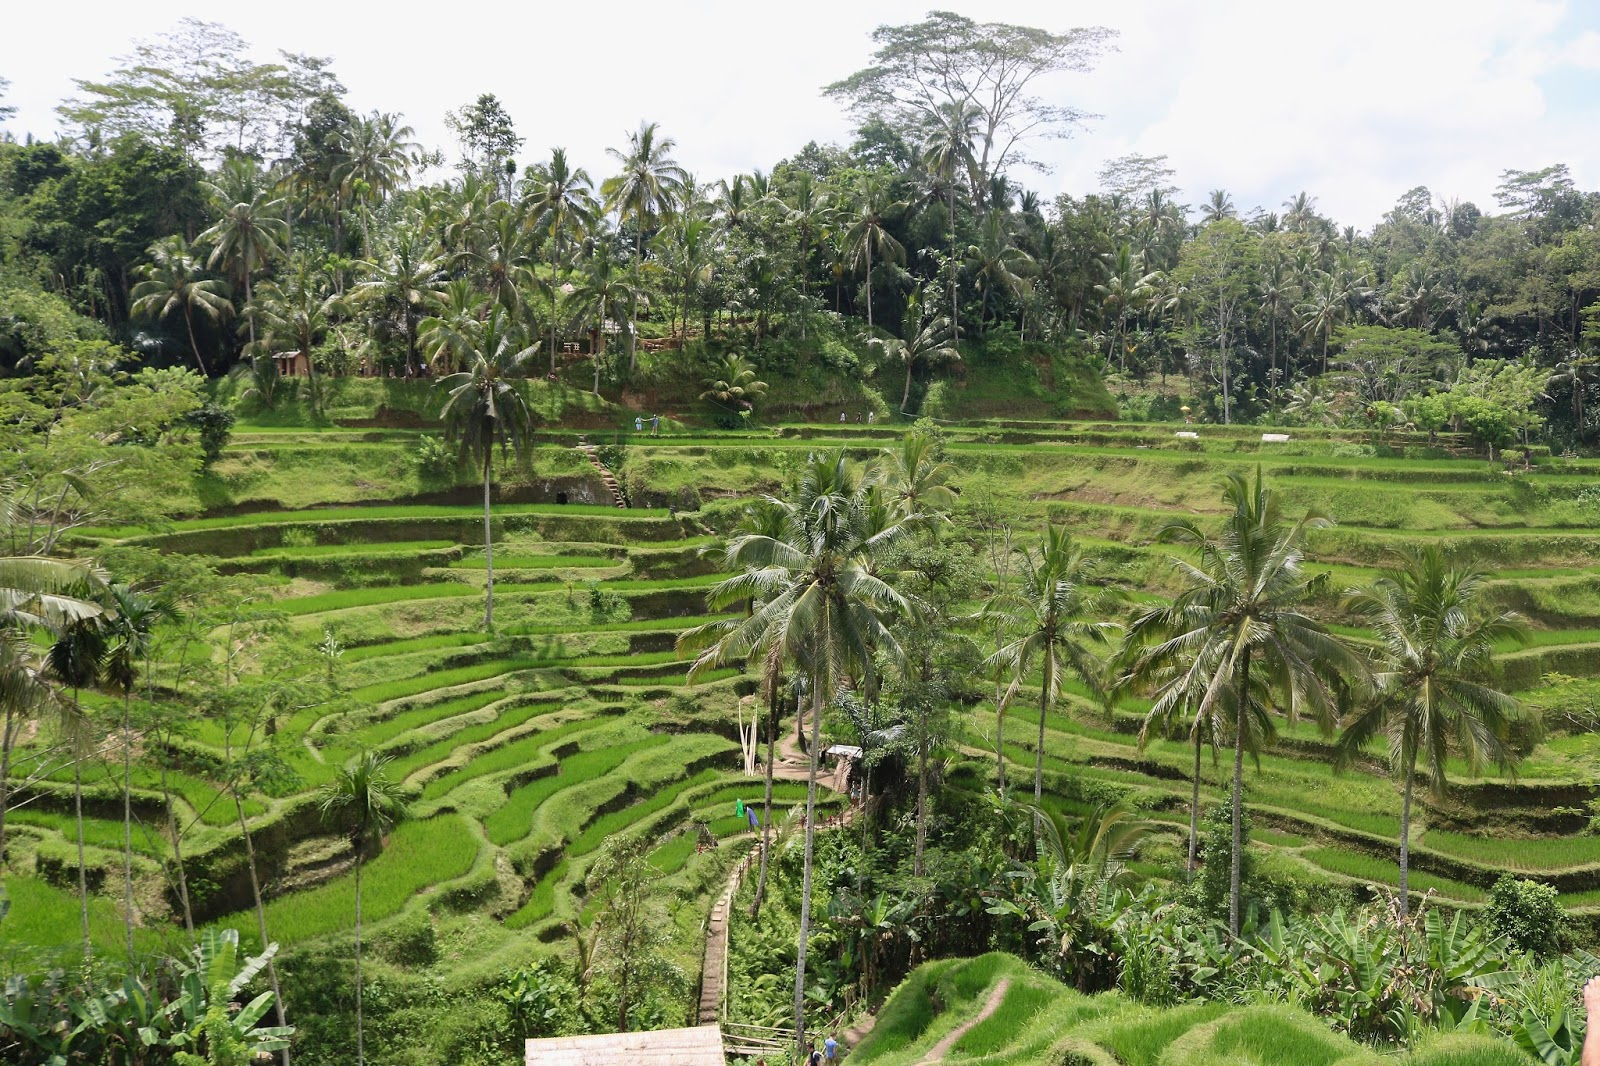 bali tegalalang rice terraces